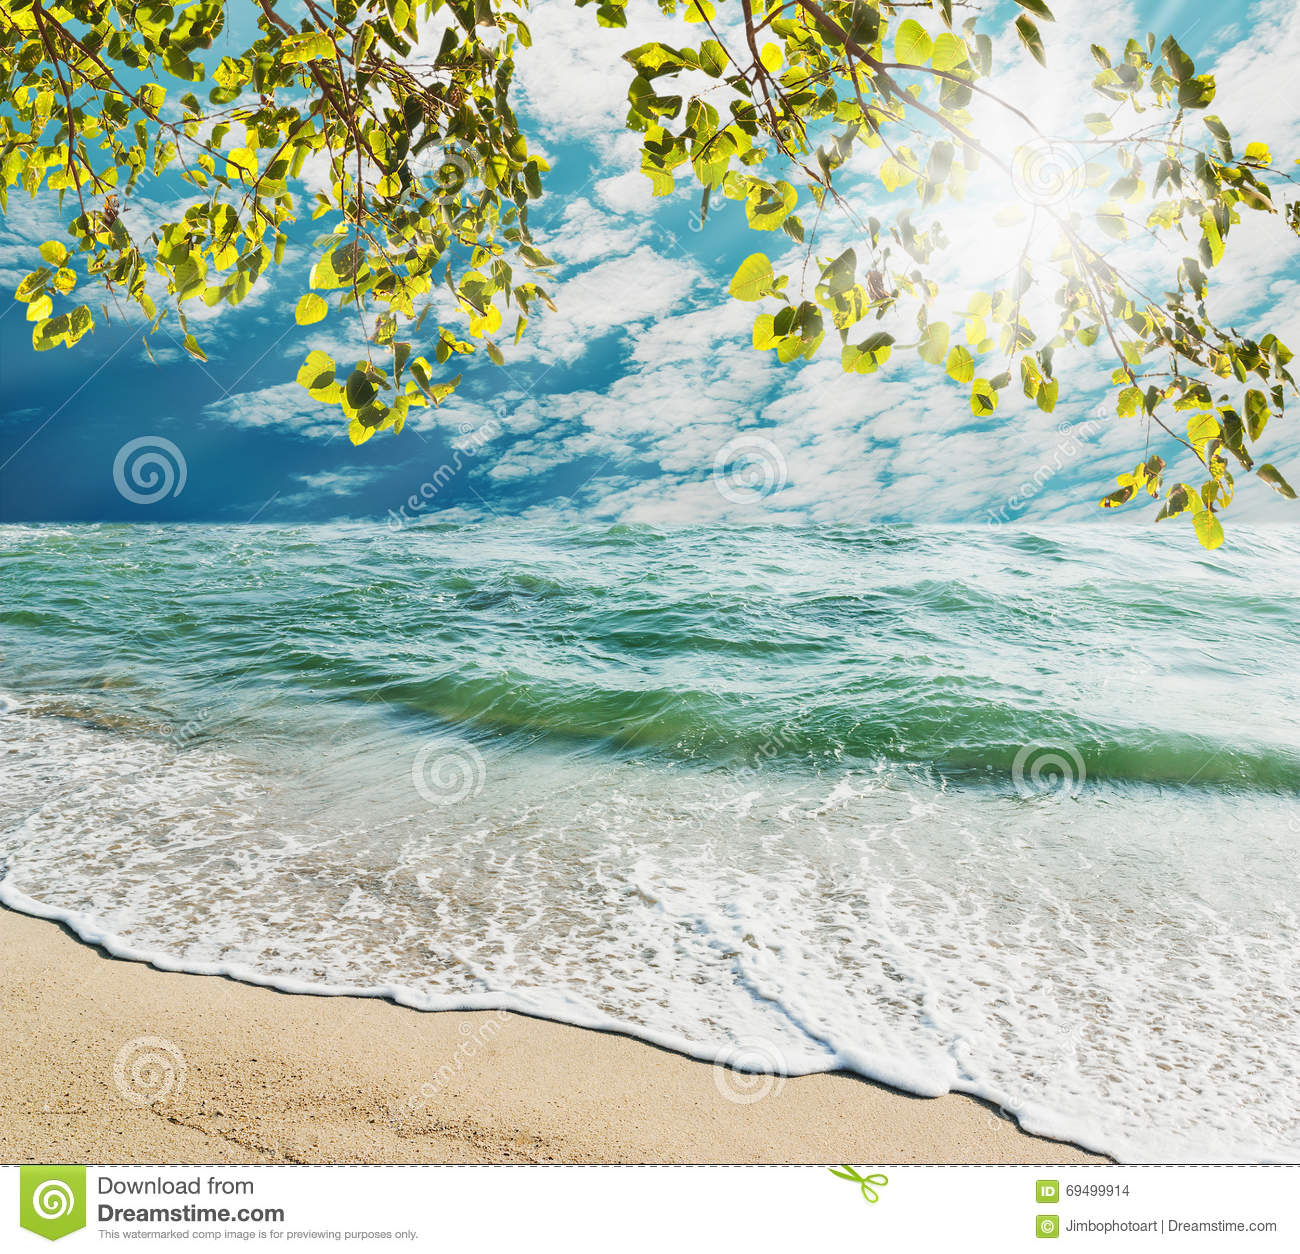 Sand Beach In Summer Sky Background: Summer And Travel Concept Stock Photo